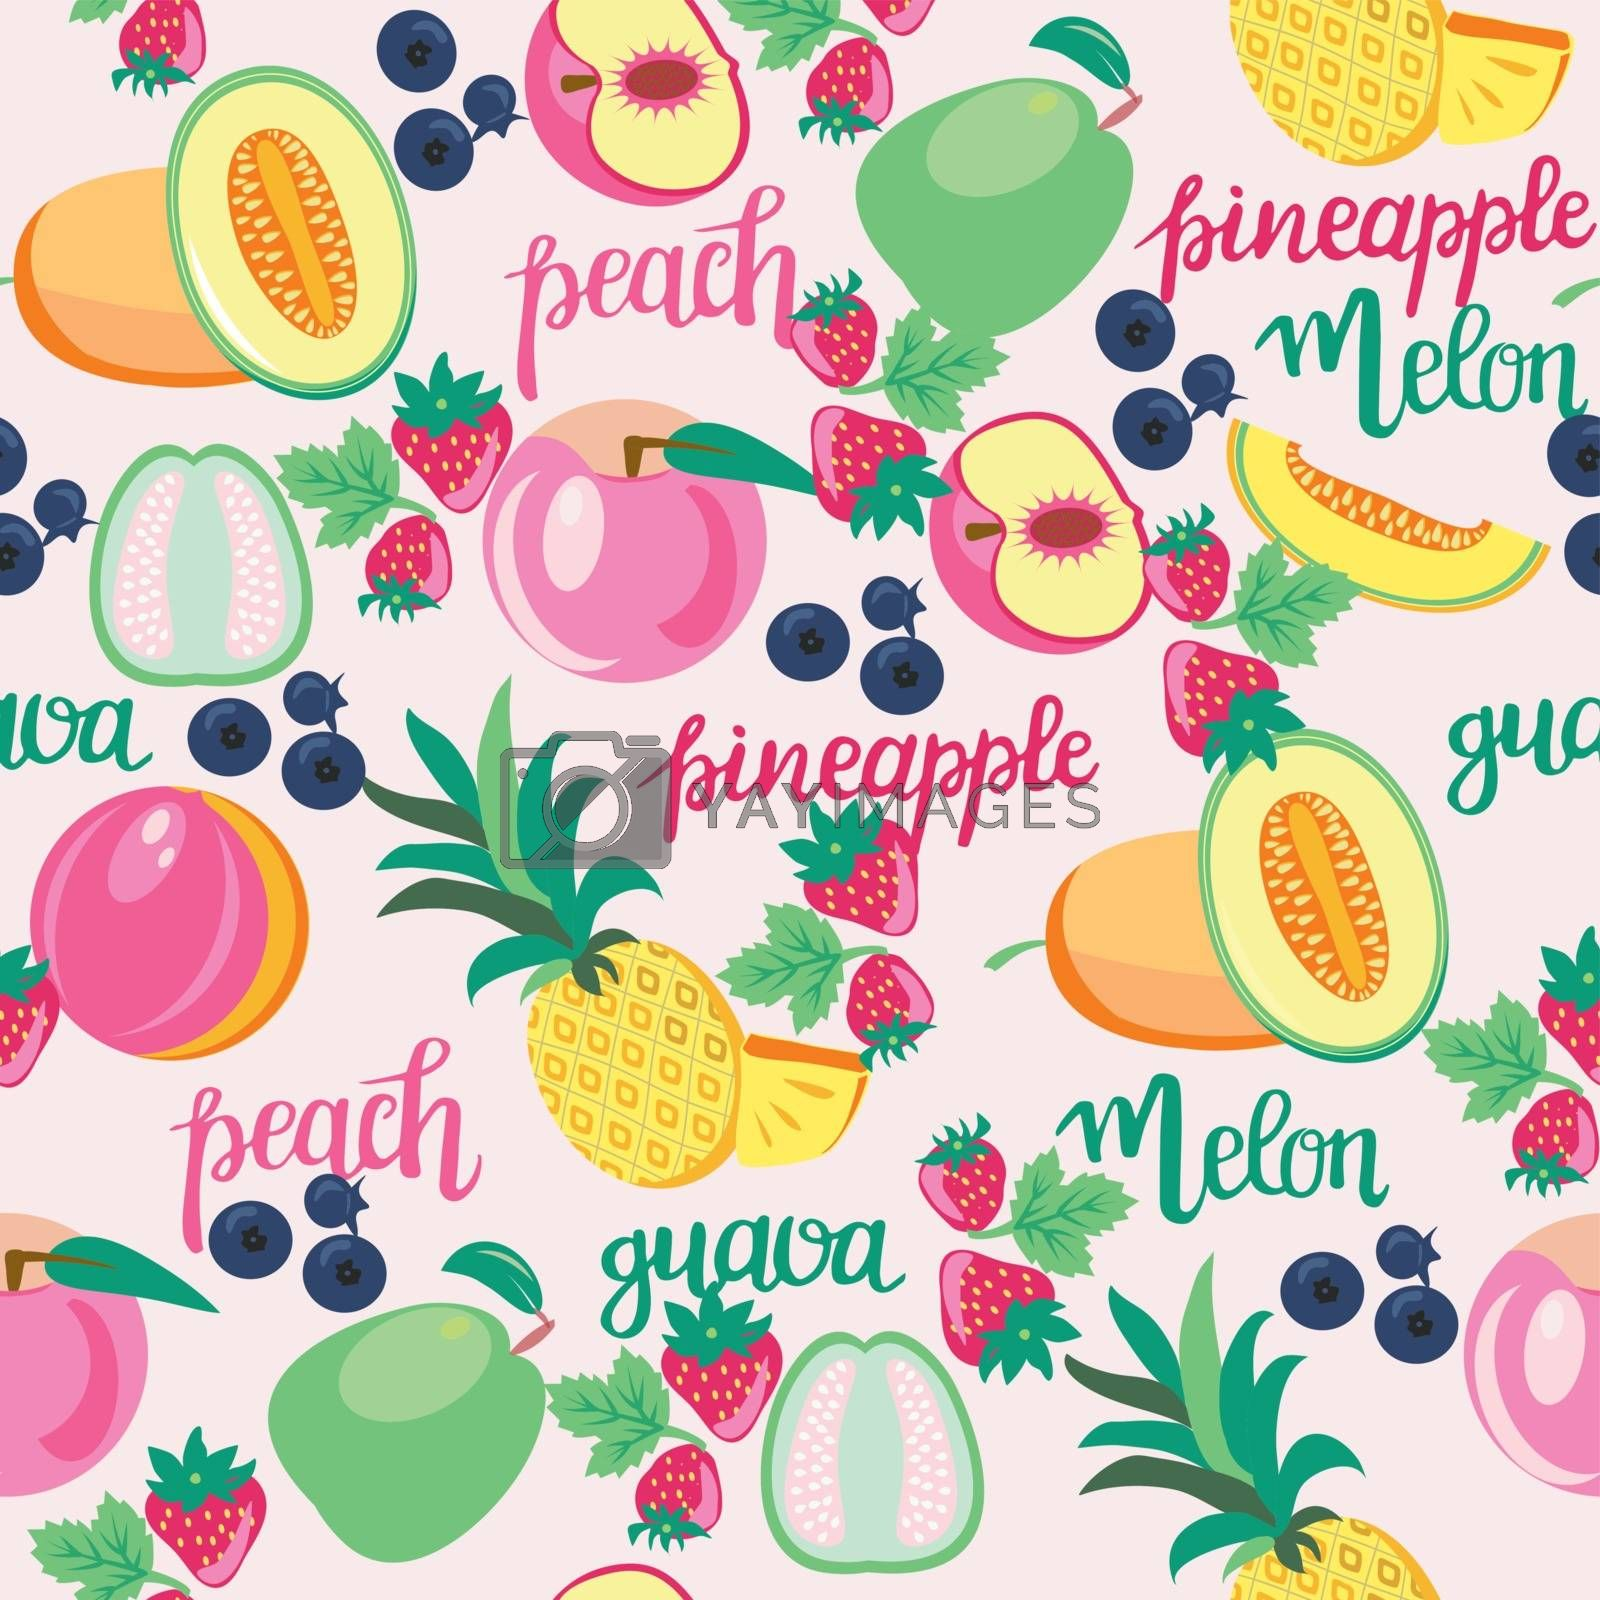 Seamless pattern with fruits peach, guava, melon, pineapple and hand drawn lettering, Healthy food fruit  for wallpaper, background or greeting cards, fabric.